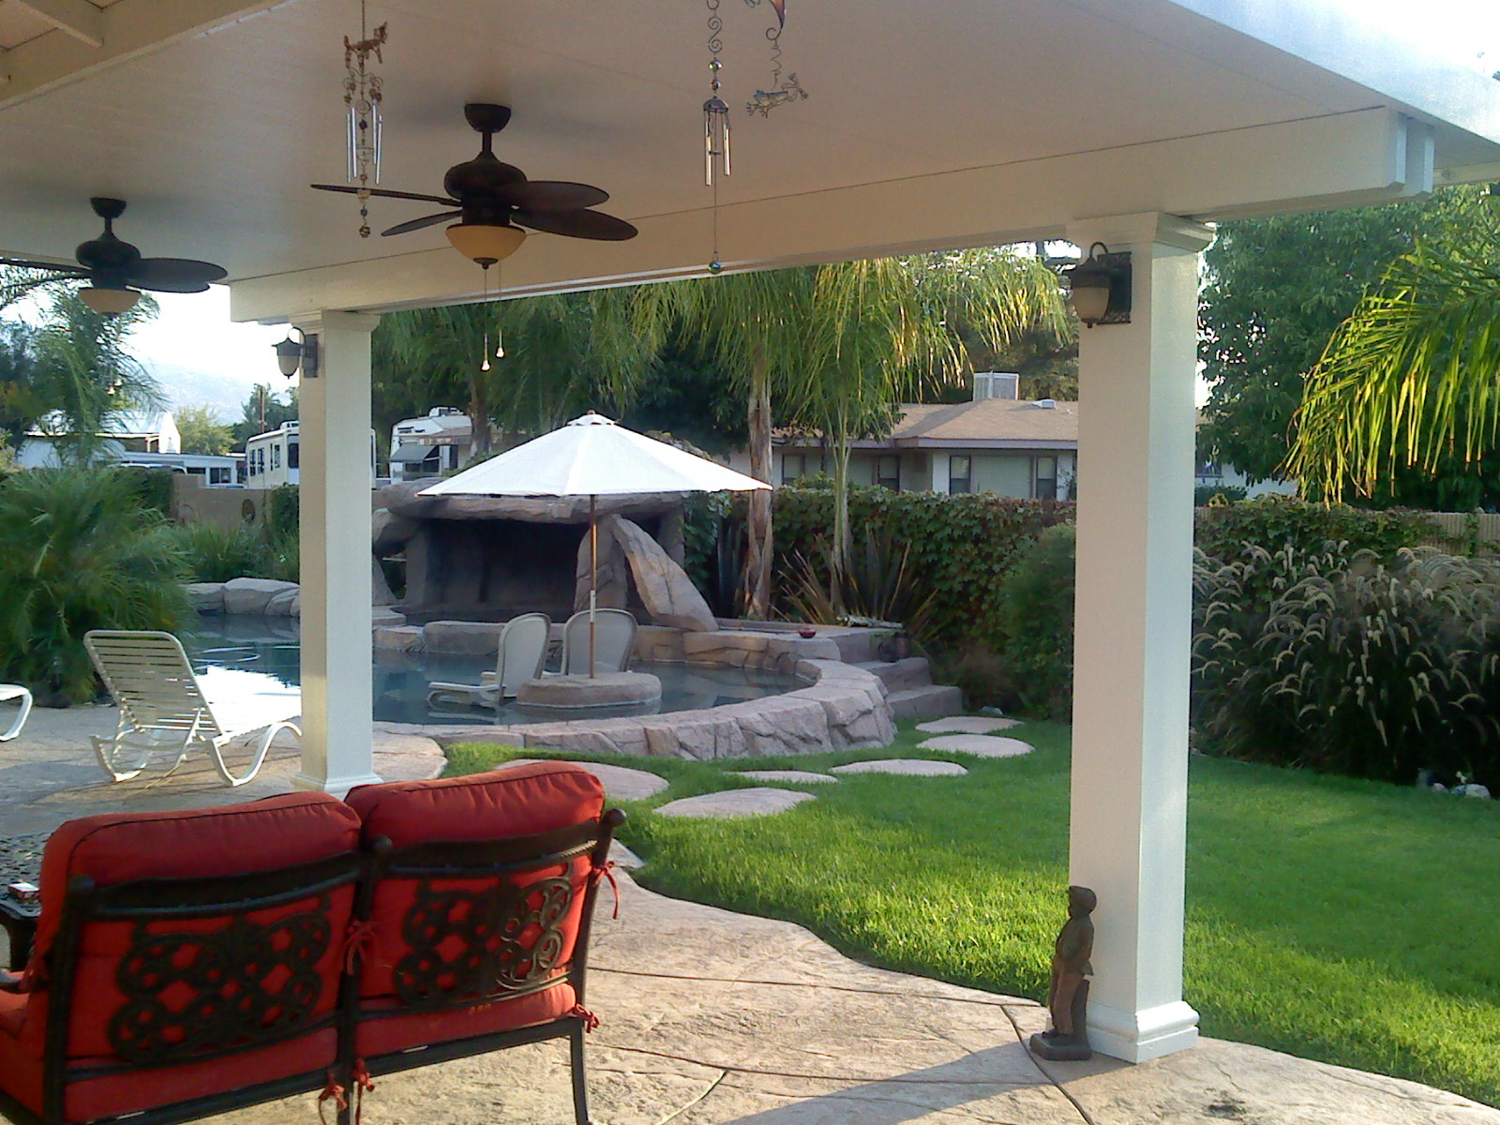 Covered Patio Designs   Custom Patio Covers   Shade Ideas ... on Ideas For Patio Covers  id=83804